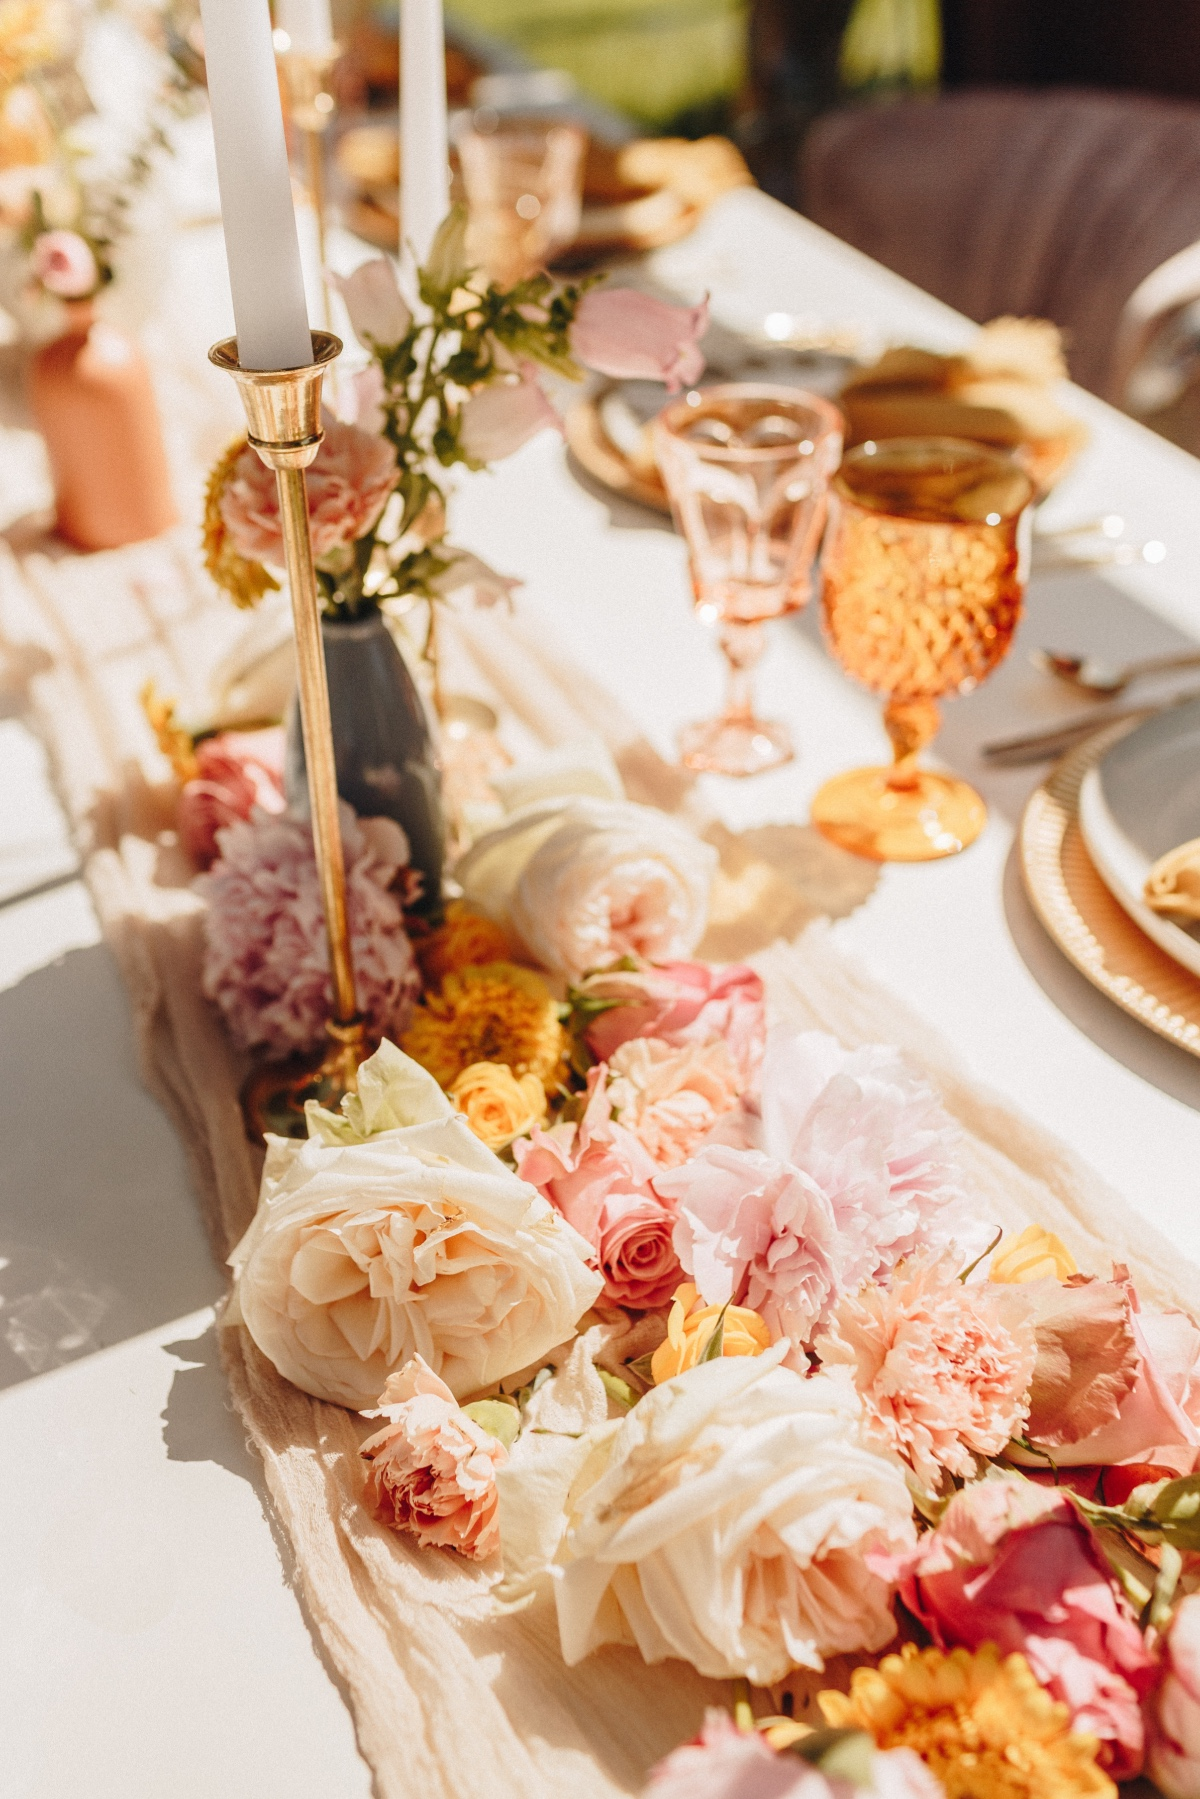 We Get Retro Vibes from this Palm Springs Wedding Inspiration